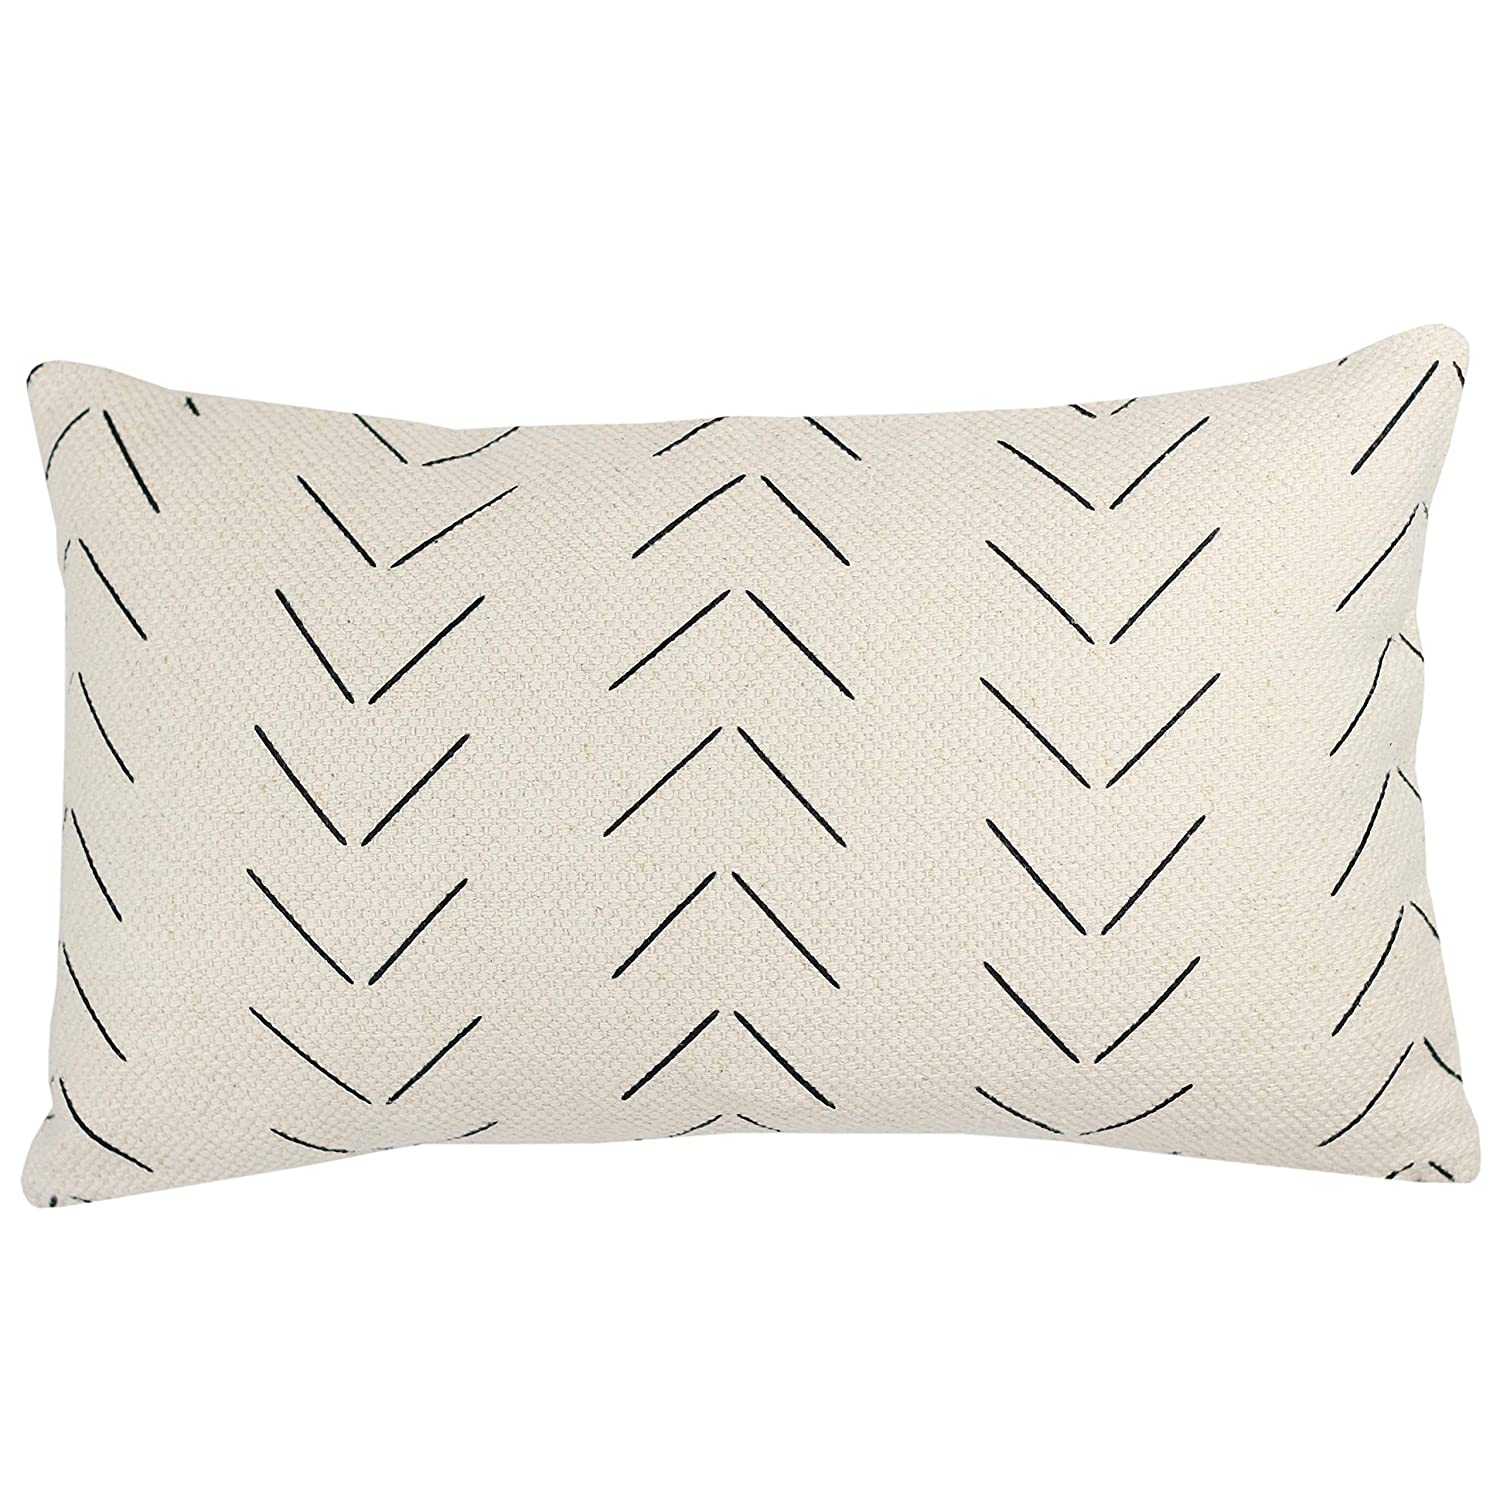 Woven Nook Decorative Lumbar Throw Pillow Cover Only For Couch Sofa Or Bed 12x20 12x26 12x40 Inch Modern Quality Design 100 Thick Woven Cotton